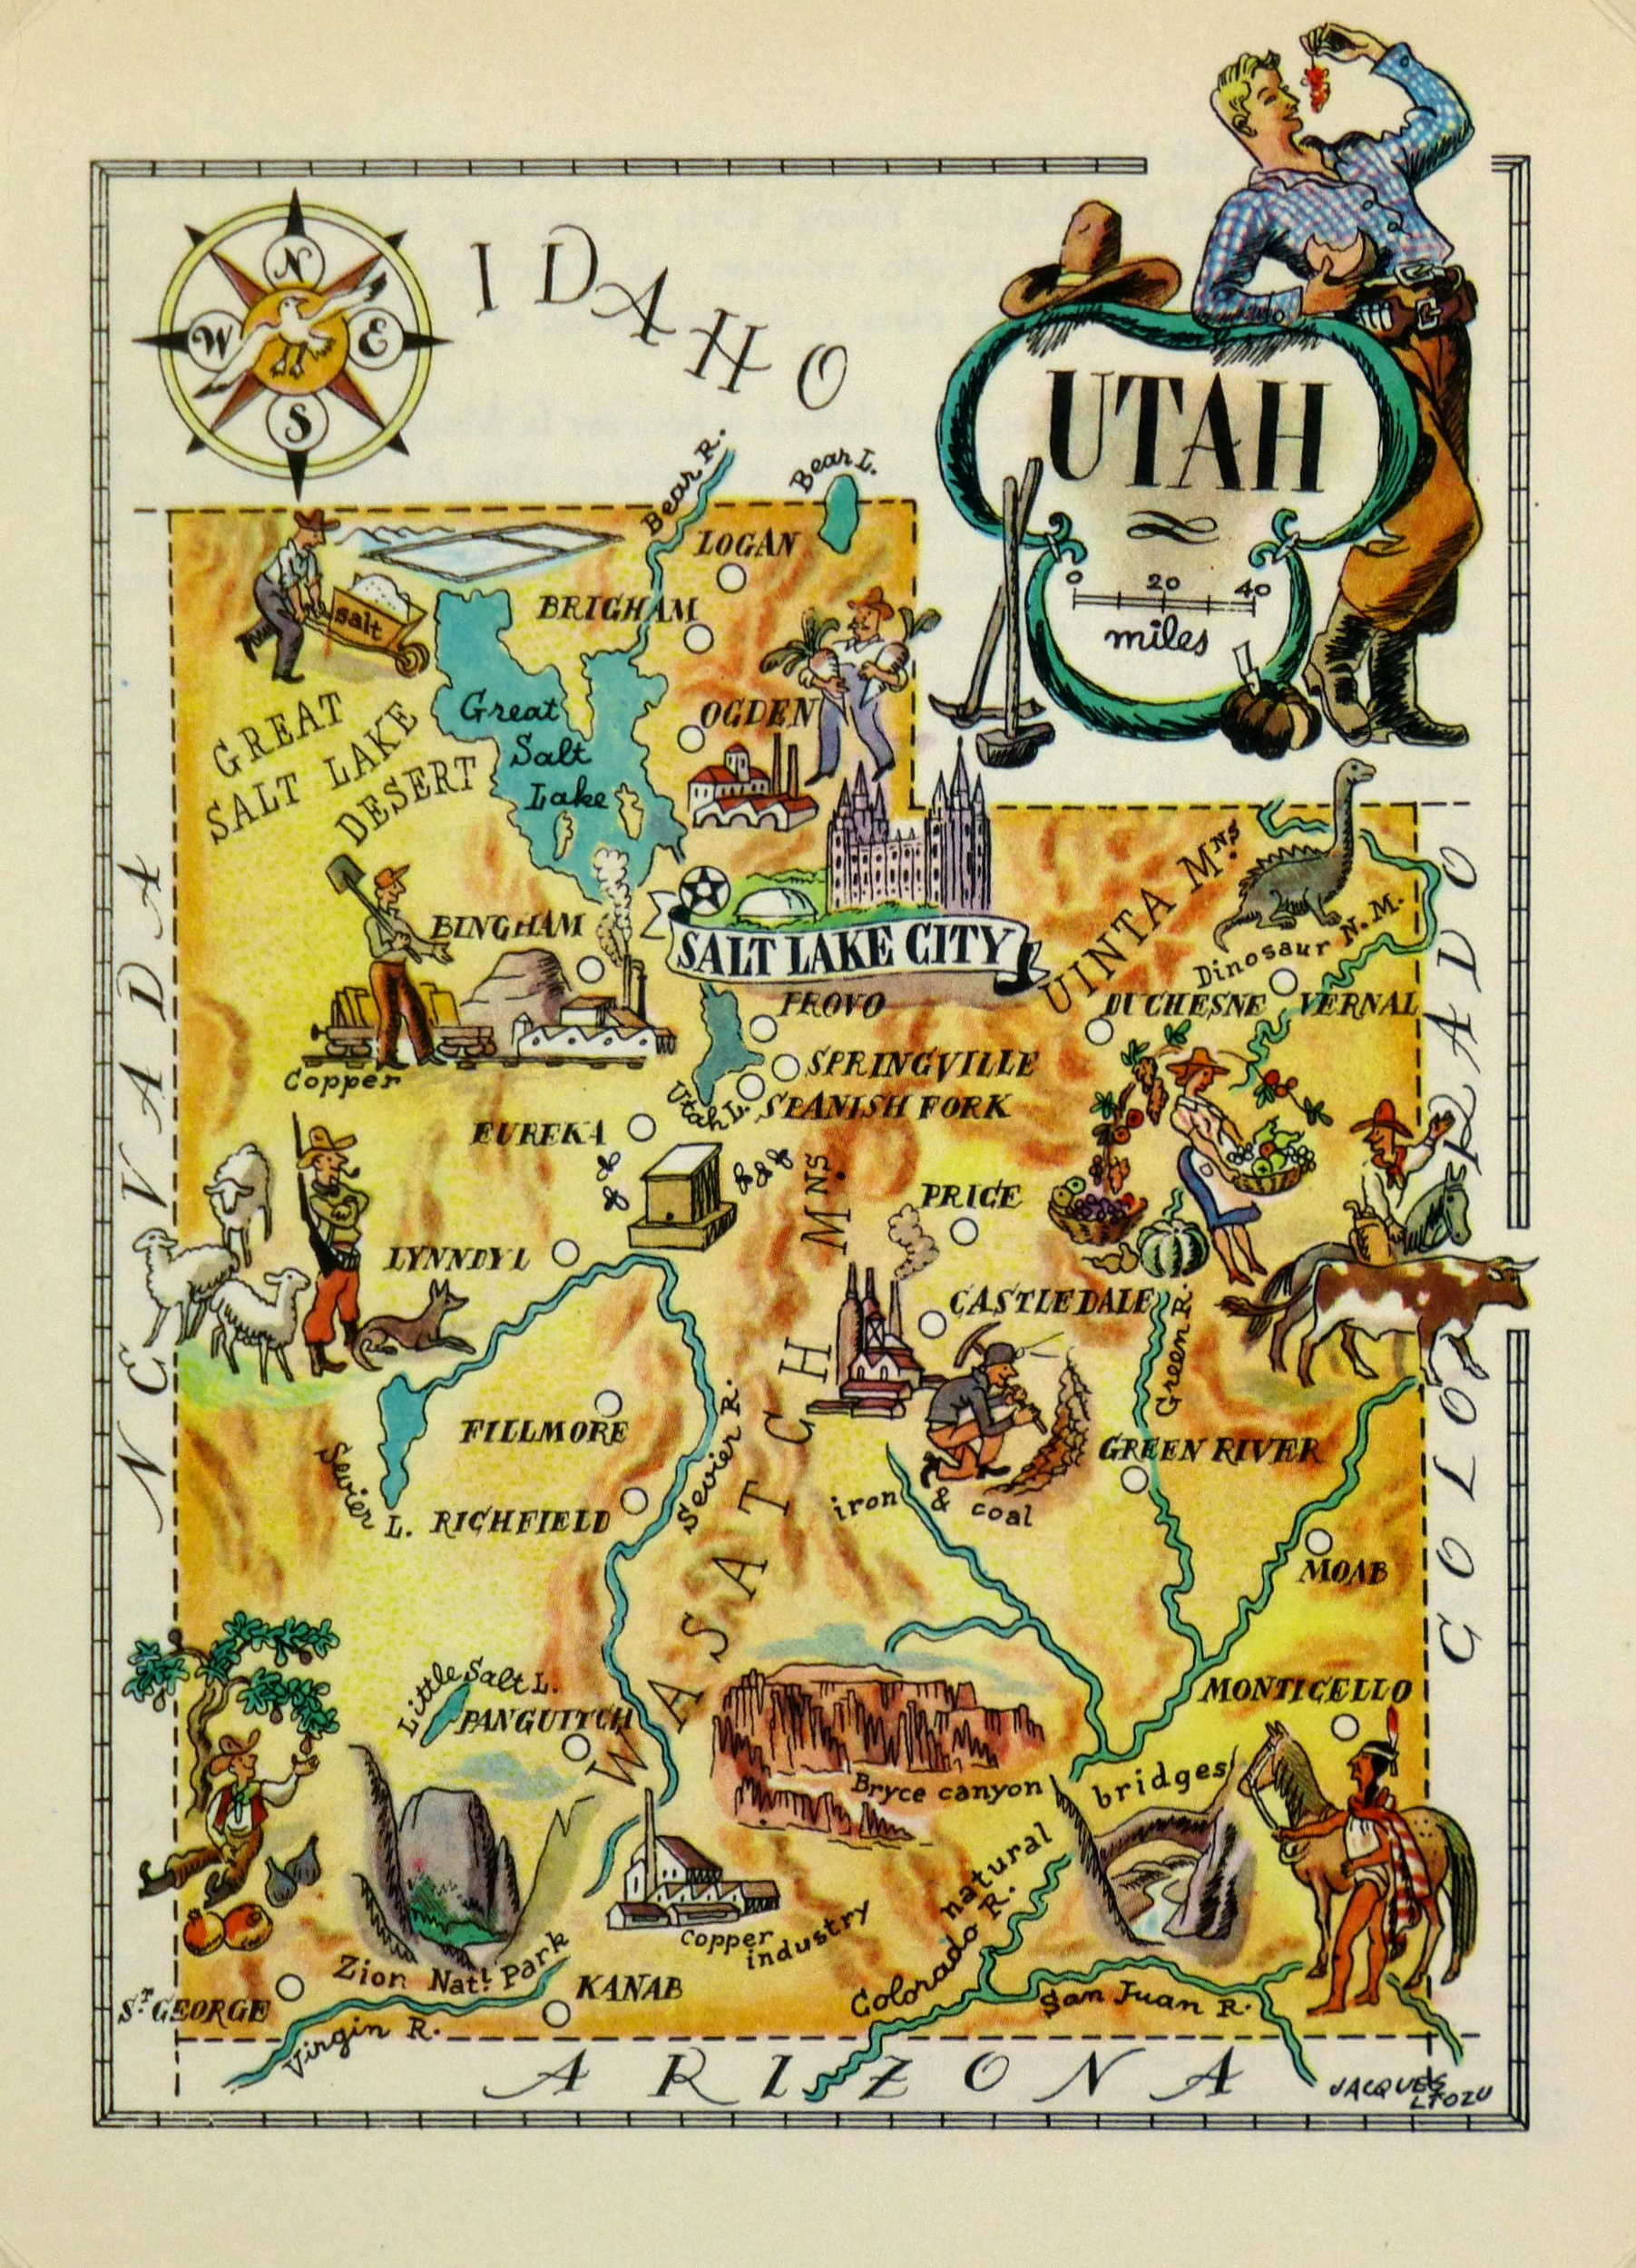 Utah Pictorial Map, 1946-main-6245K